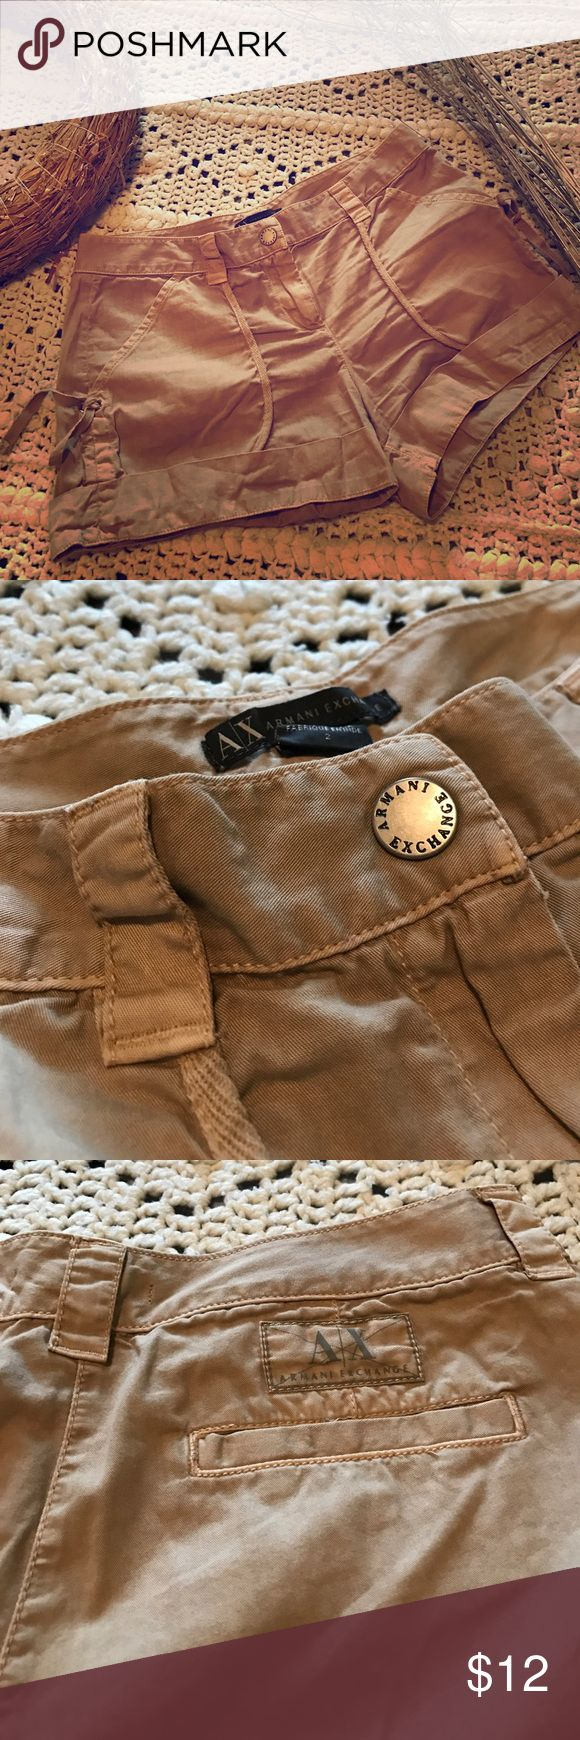 A/X Armani Exchange shorts A/X Armani Exchange shorts. In excellent used condition. Size:2. Has 2 front pockets and 1 at the back. Inquiry prior to purchase is a must. Thank you! Armani Exchange Shorts Cargos